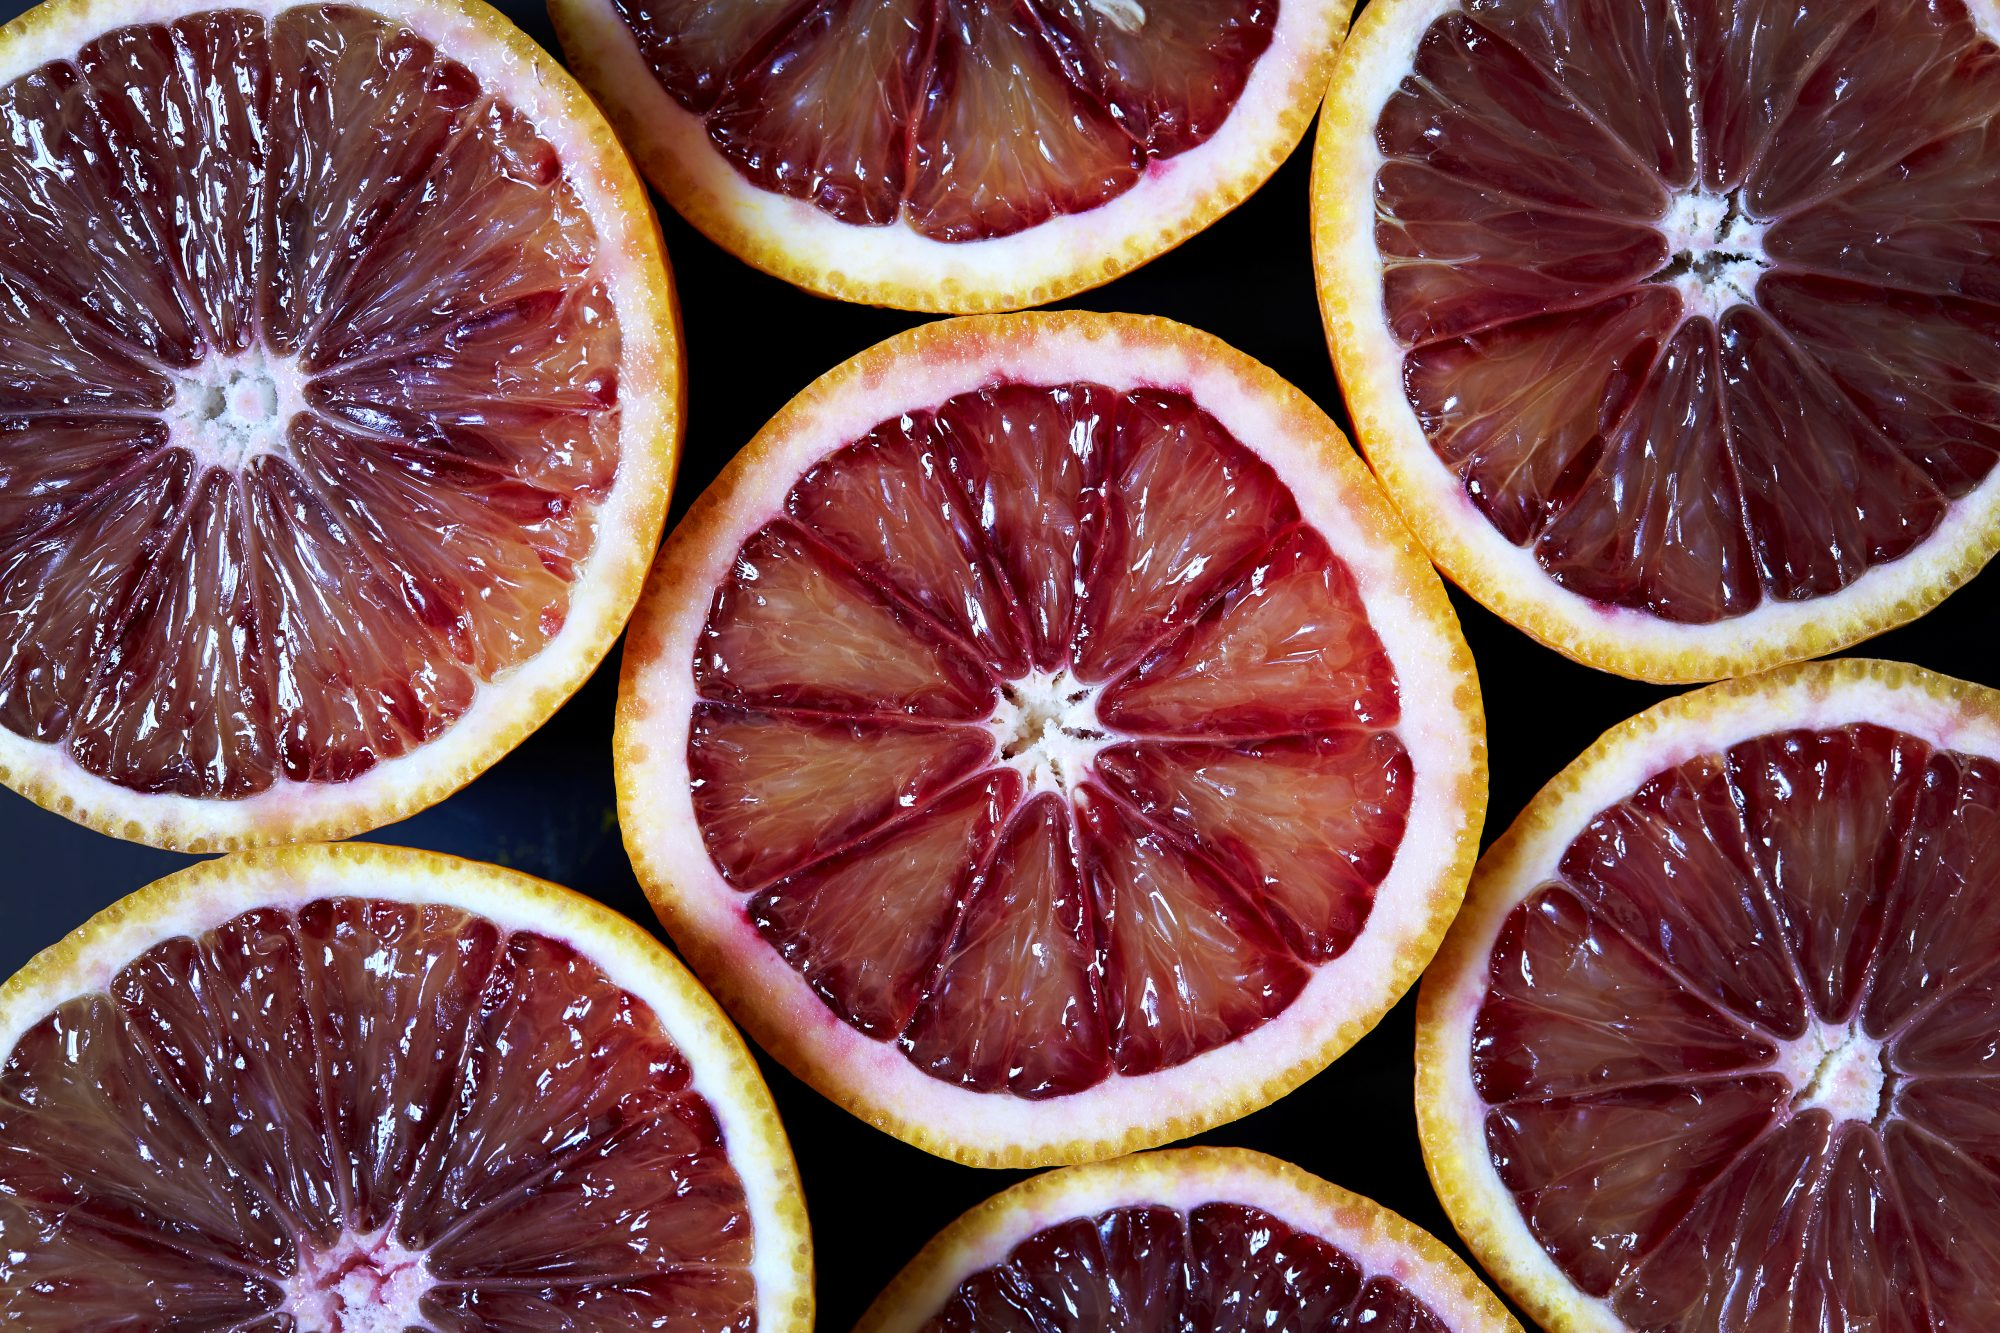 Grapefruit nutrition